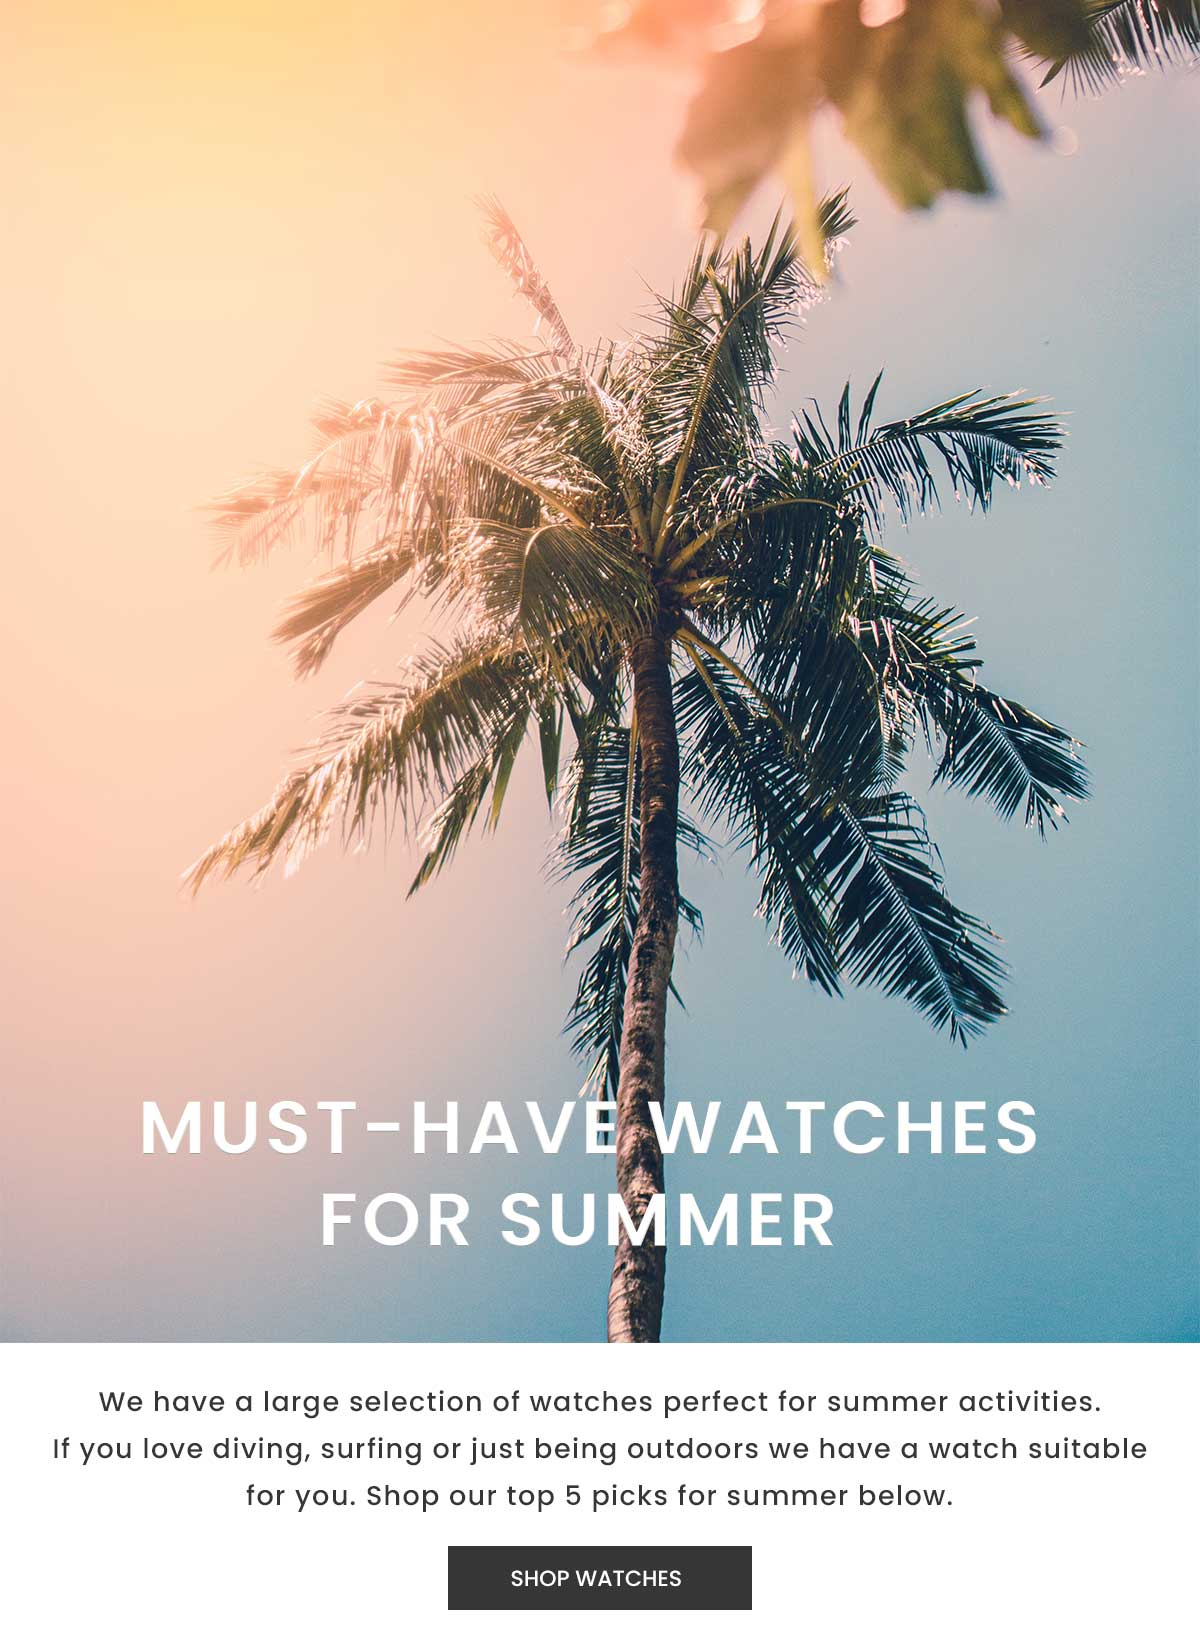 Must-Have Watches For Summer. Shop Watches.